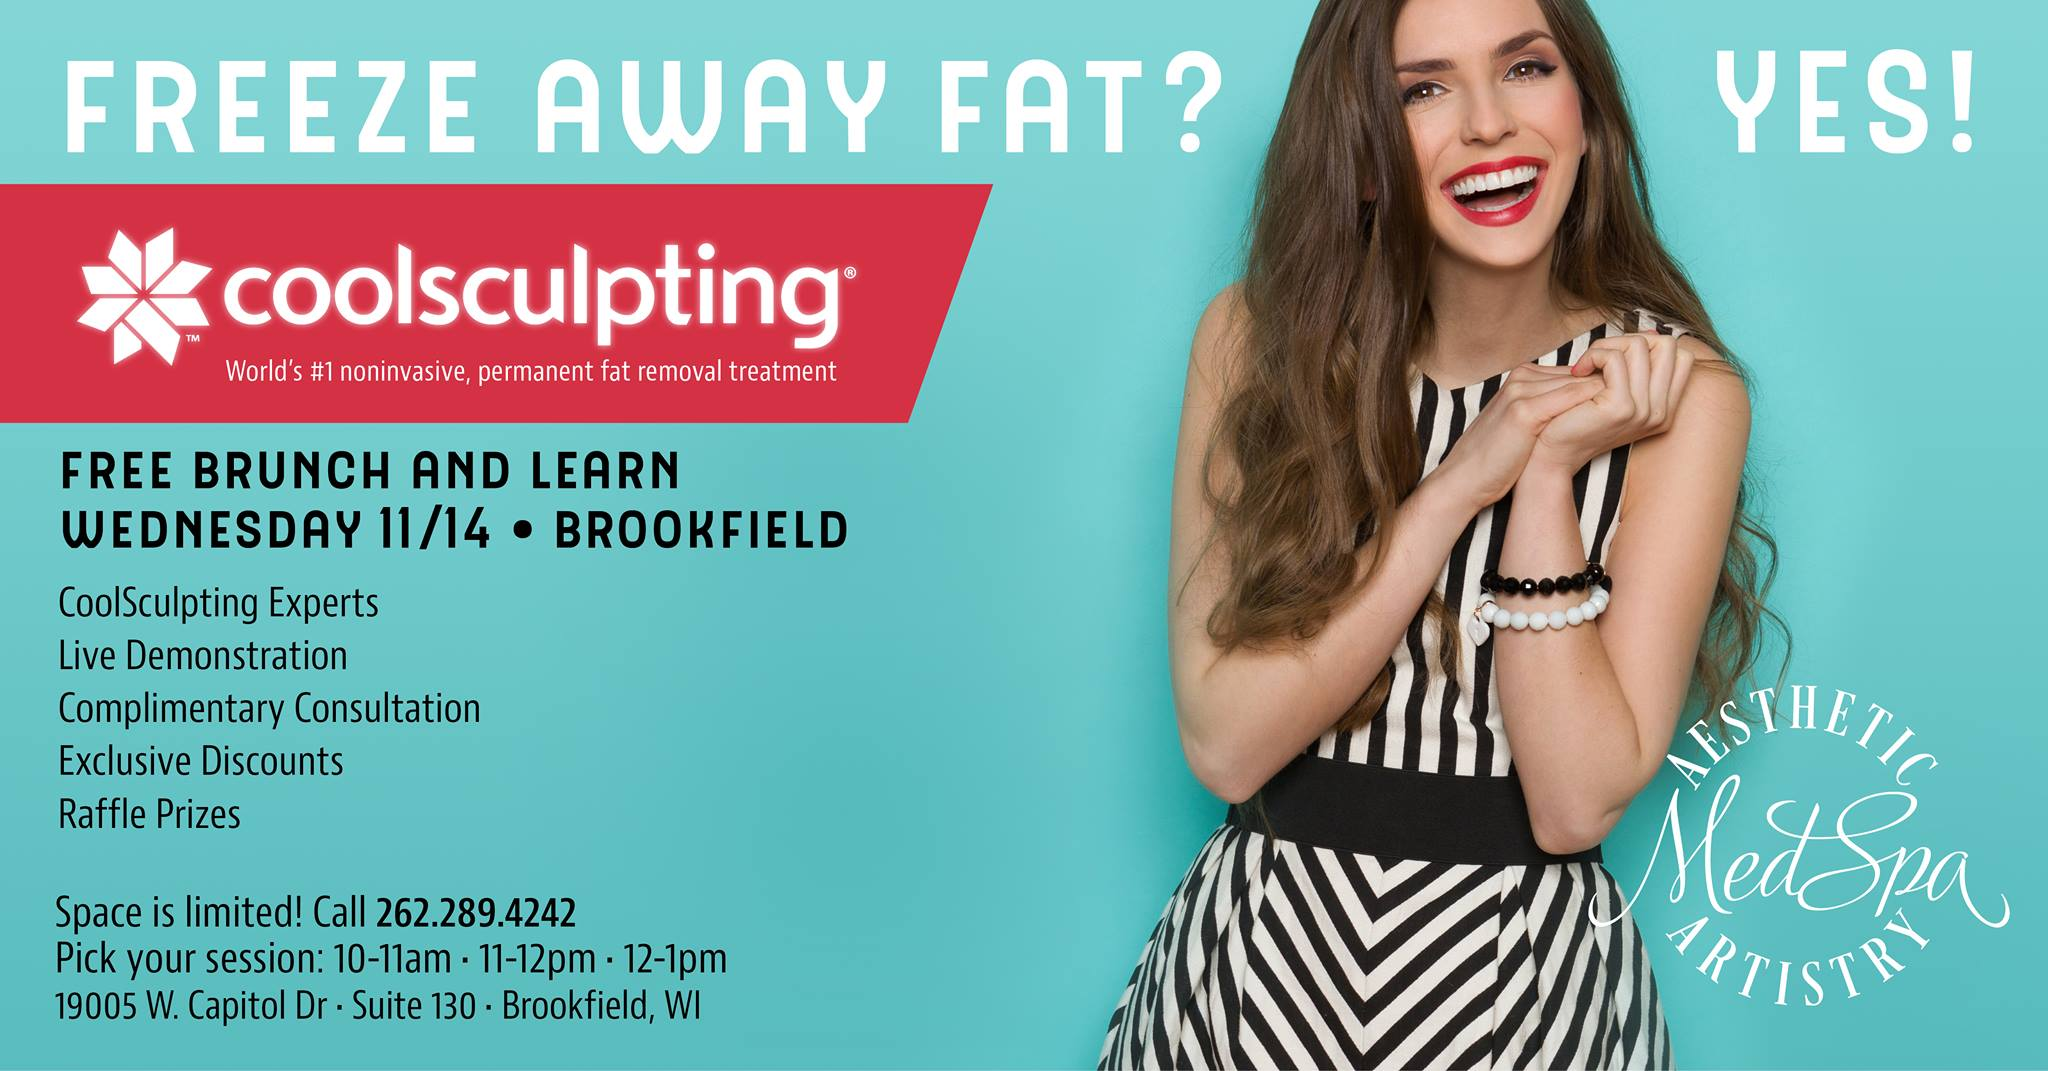 CoolSculpting Event at Aesthetic Artistry MedSpa